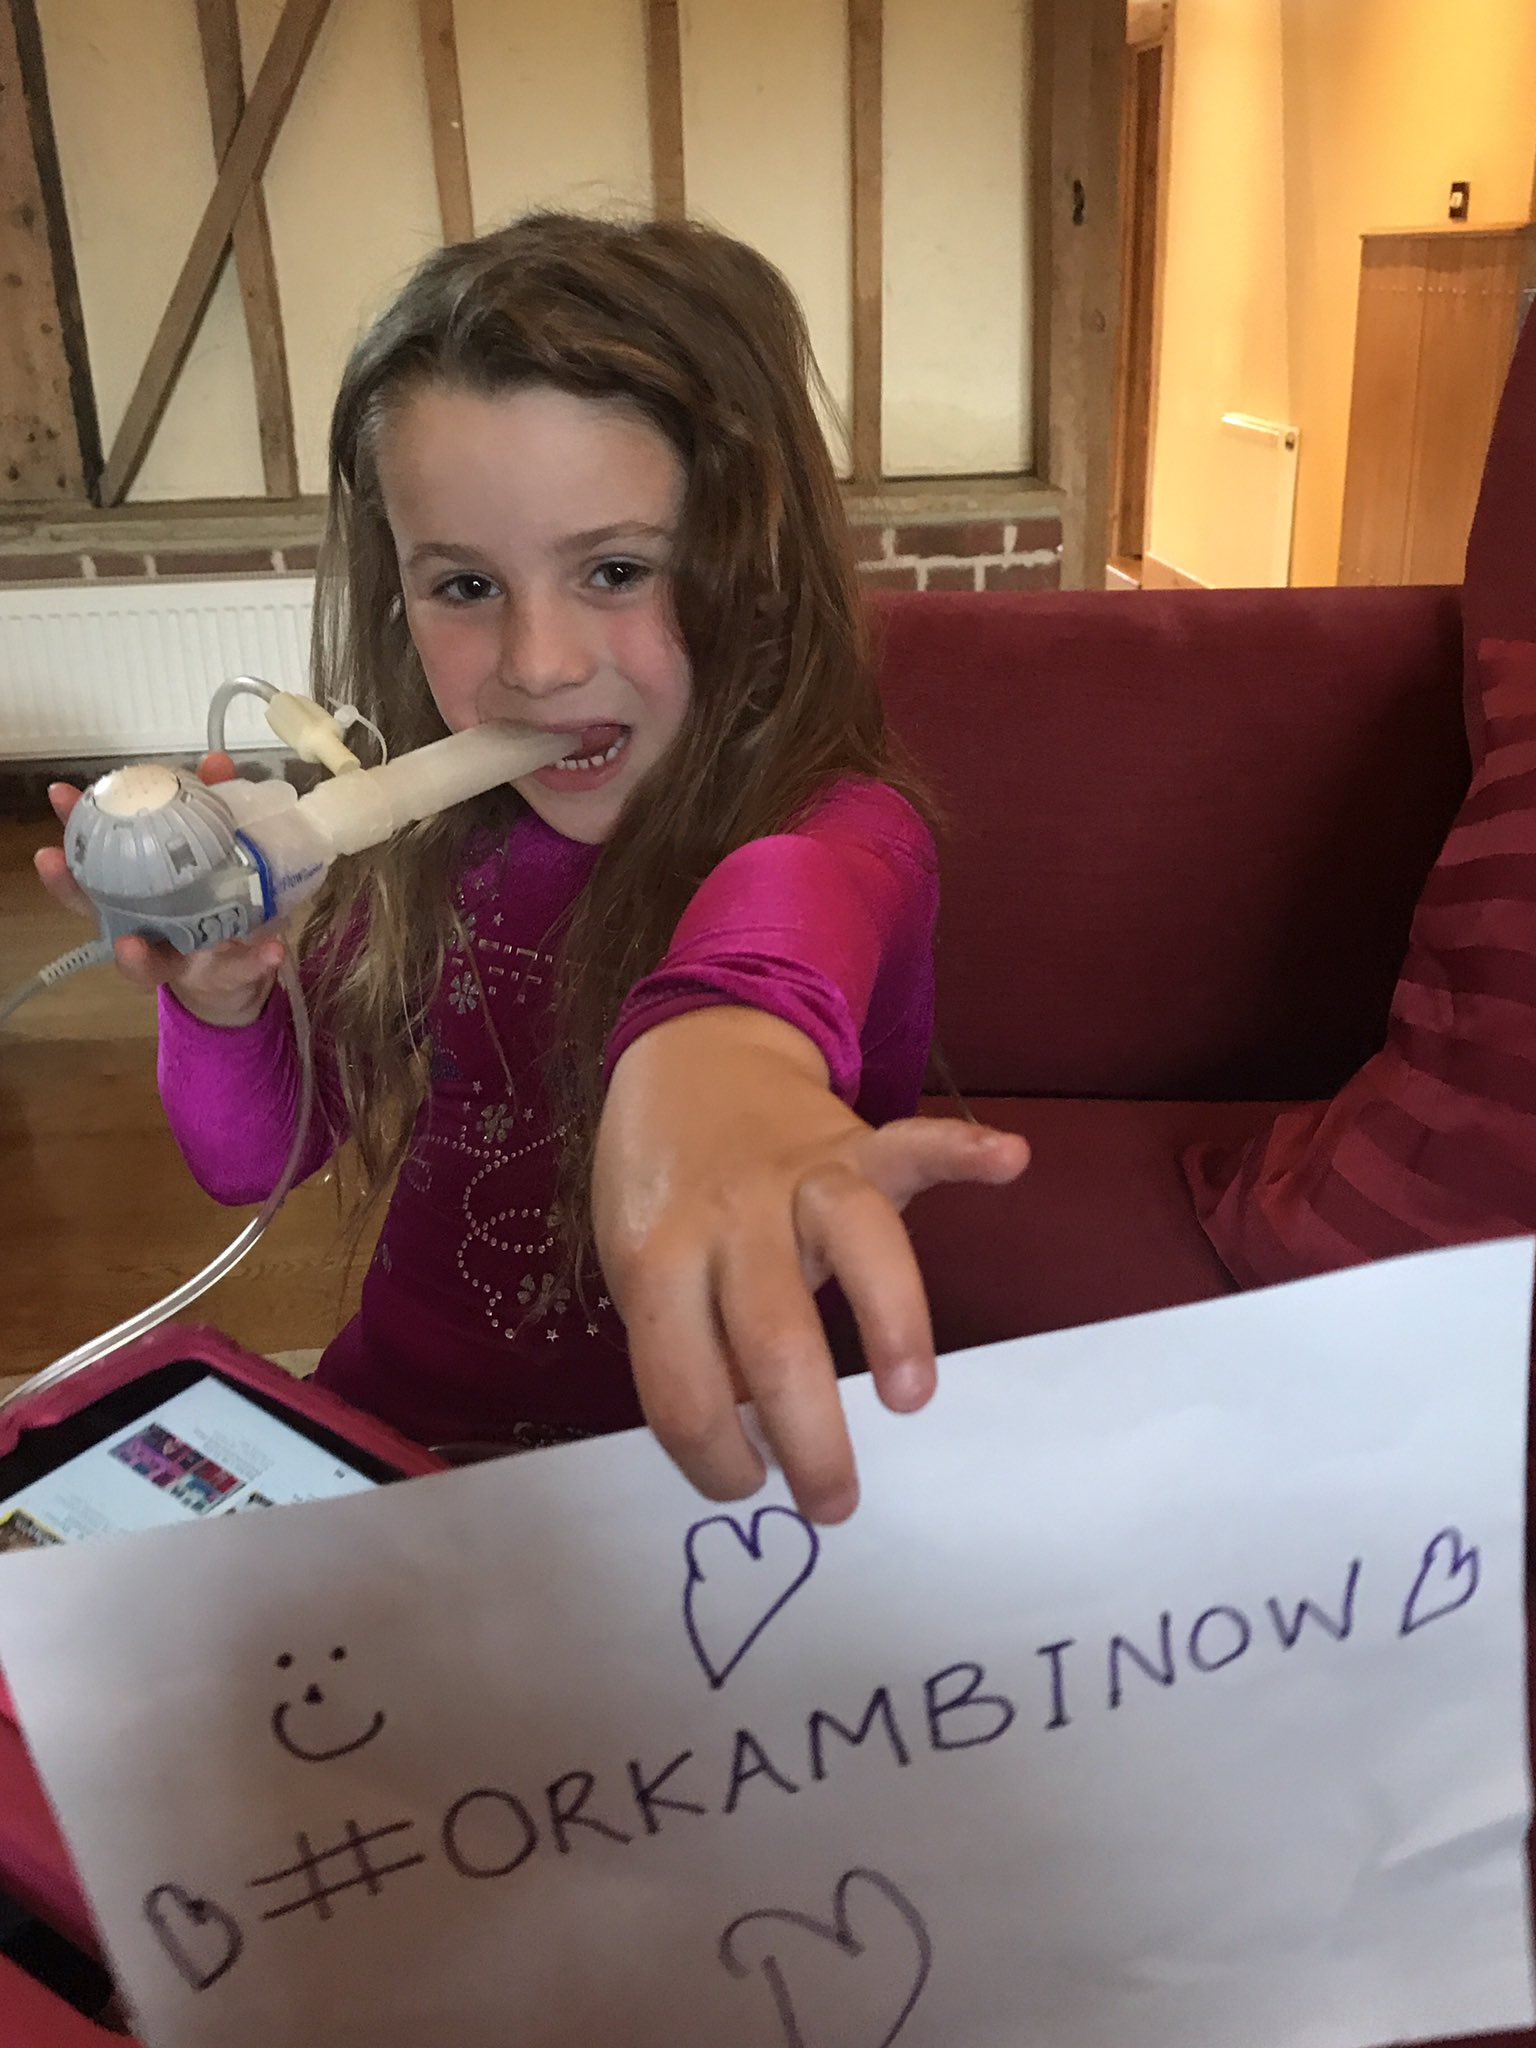 @NHSEngland @VertexPharma @Number10gov #OrkambiNow  I want 2spend less time doing physio & treatments & more time playing @cftrust @strawfie https://t.co/rPD4xIwvvG